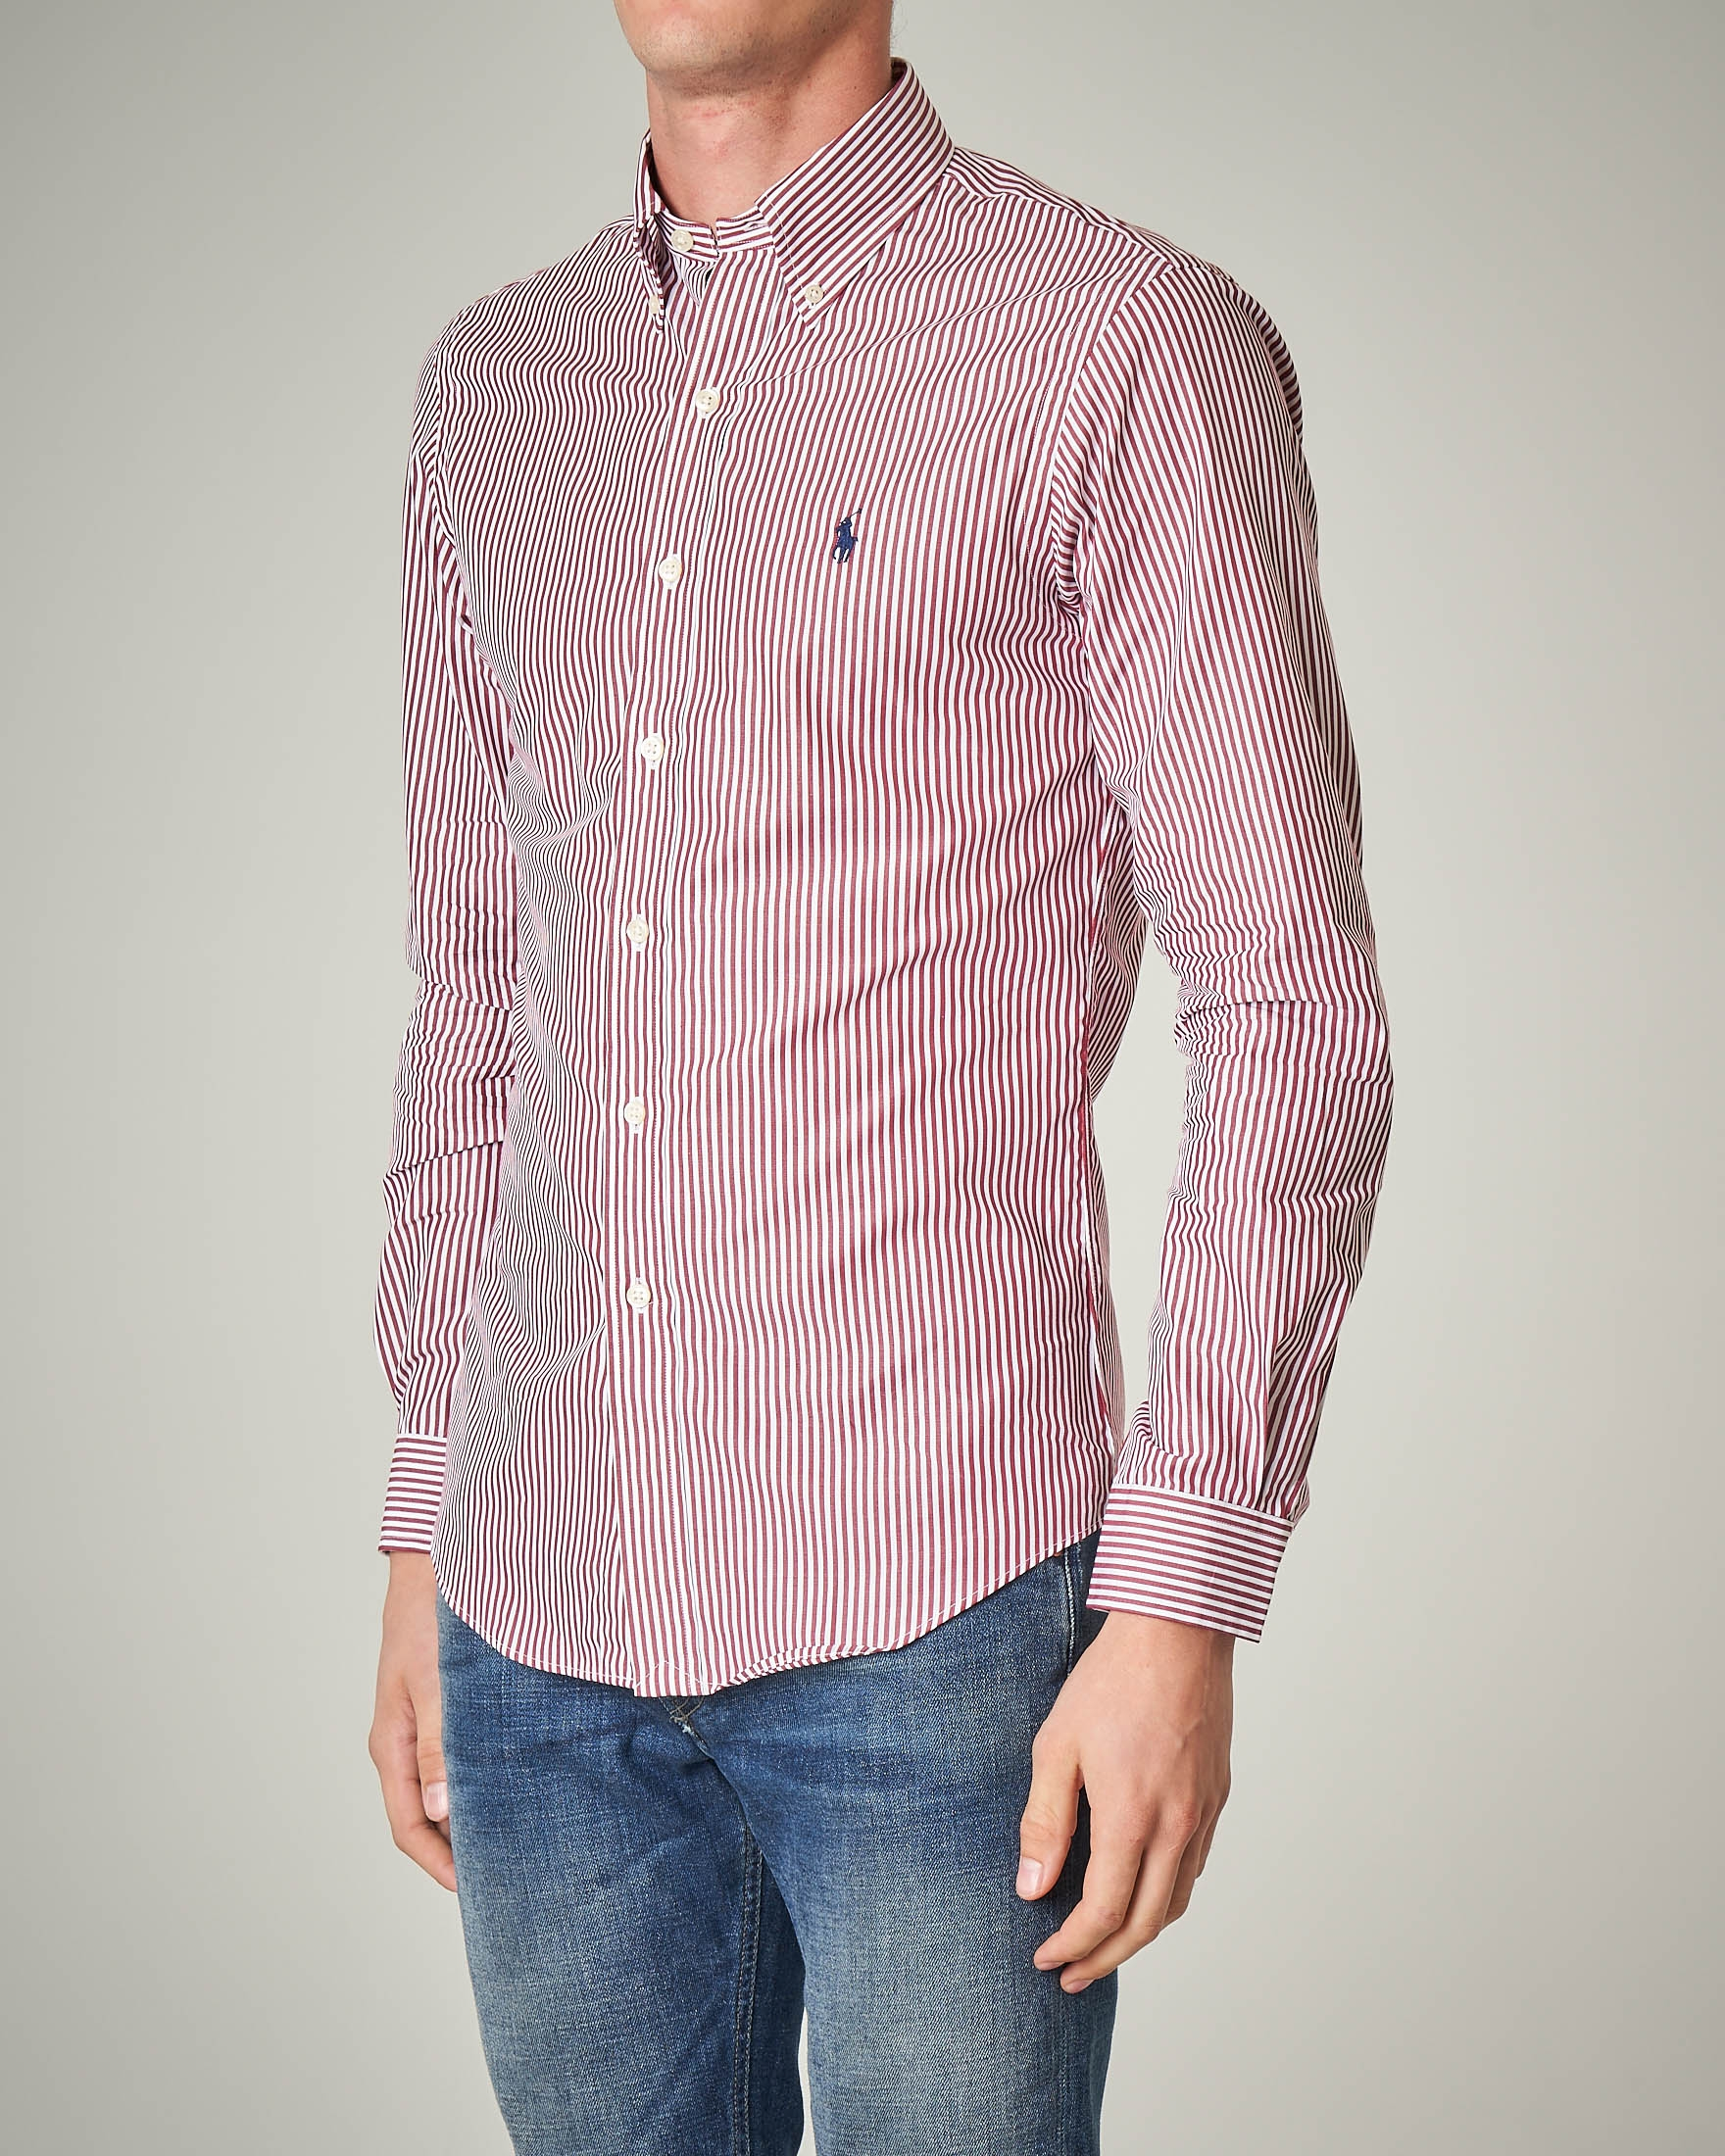 Camicia a bastoncino bianco-bordeaux button down